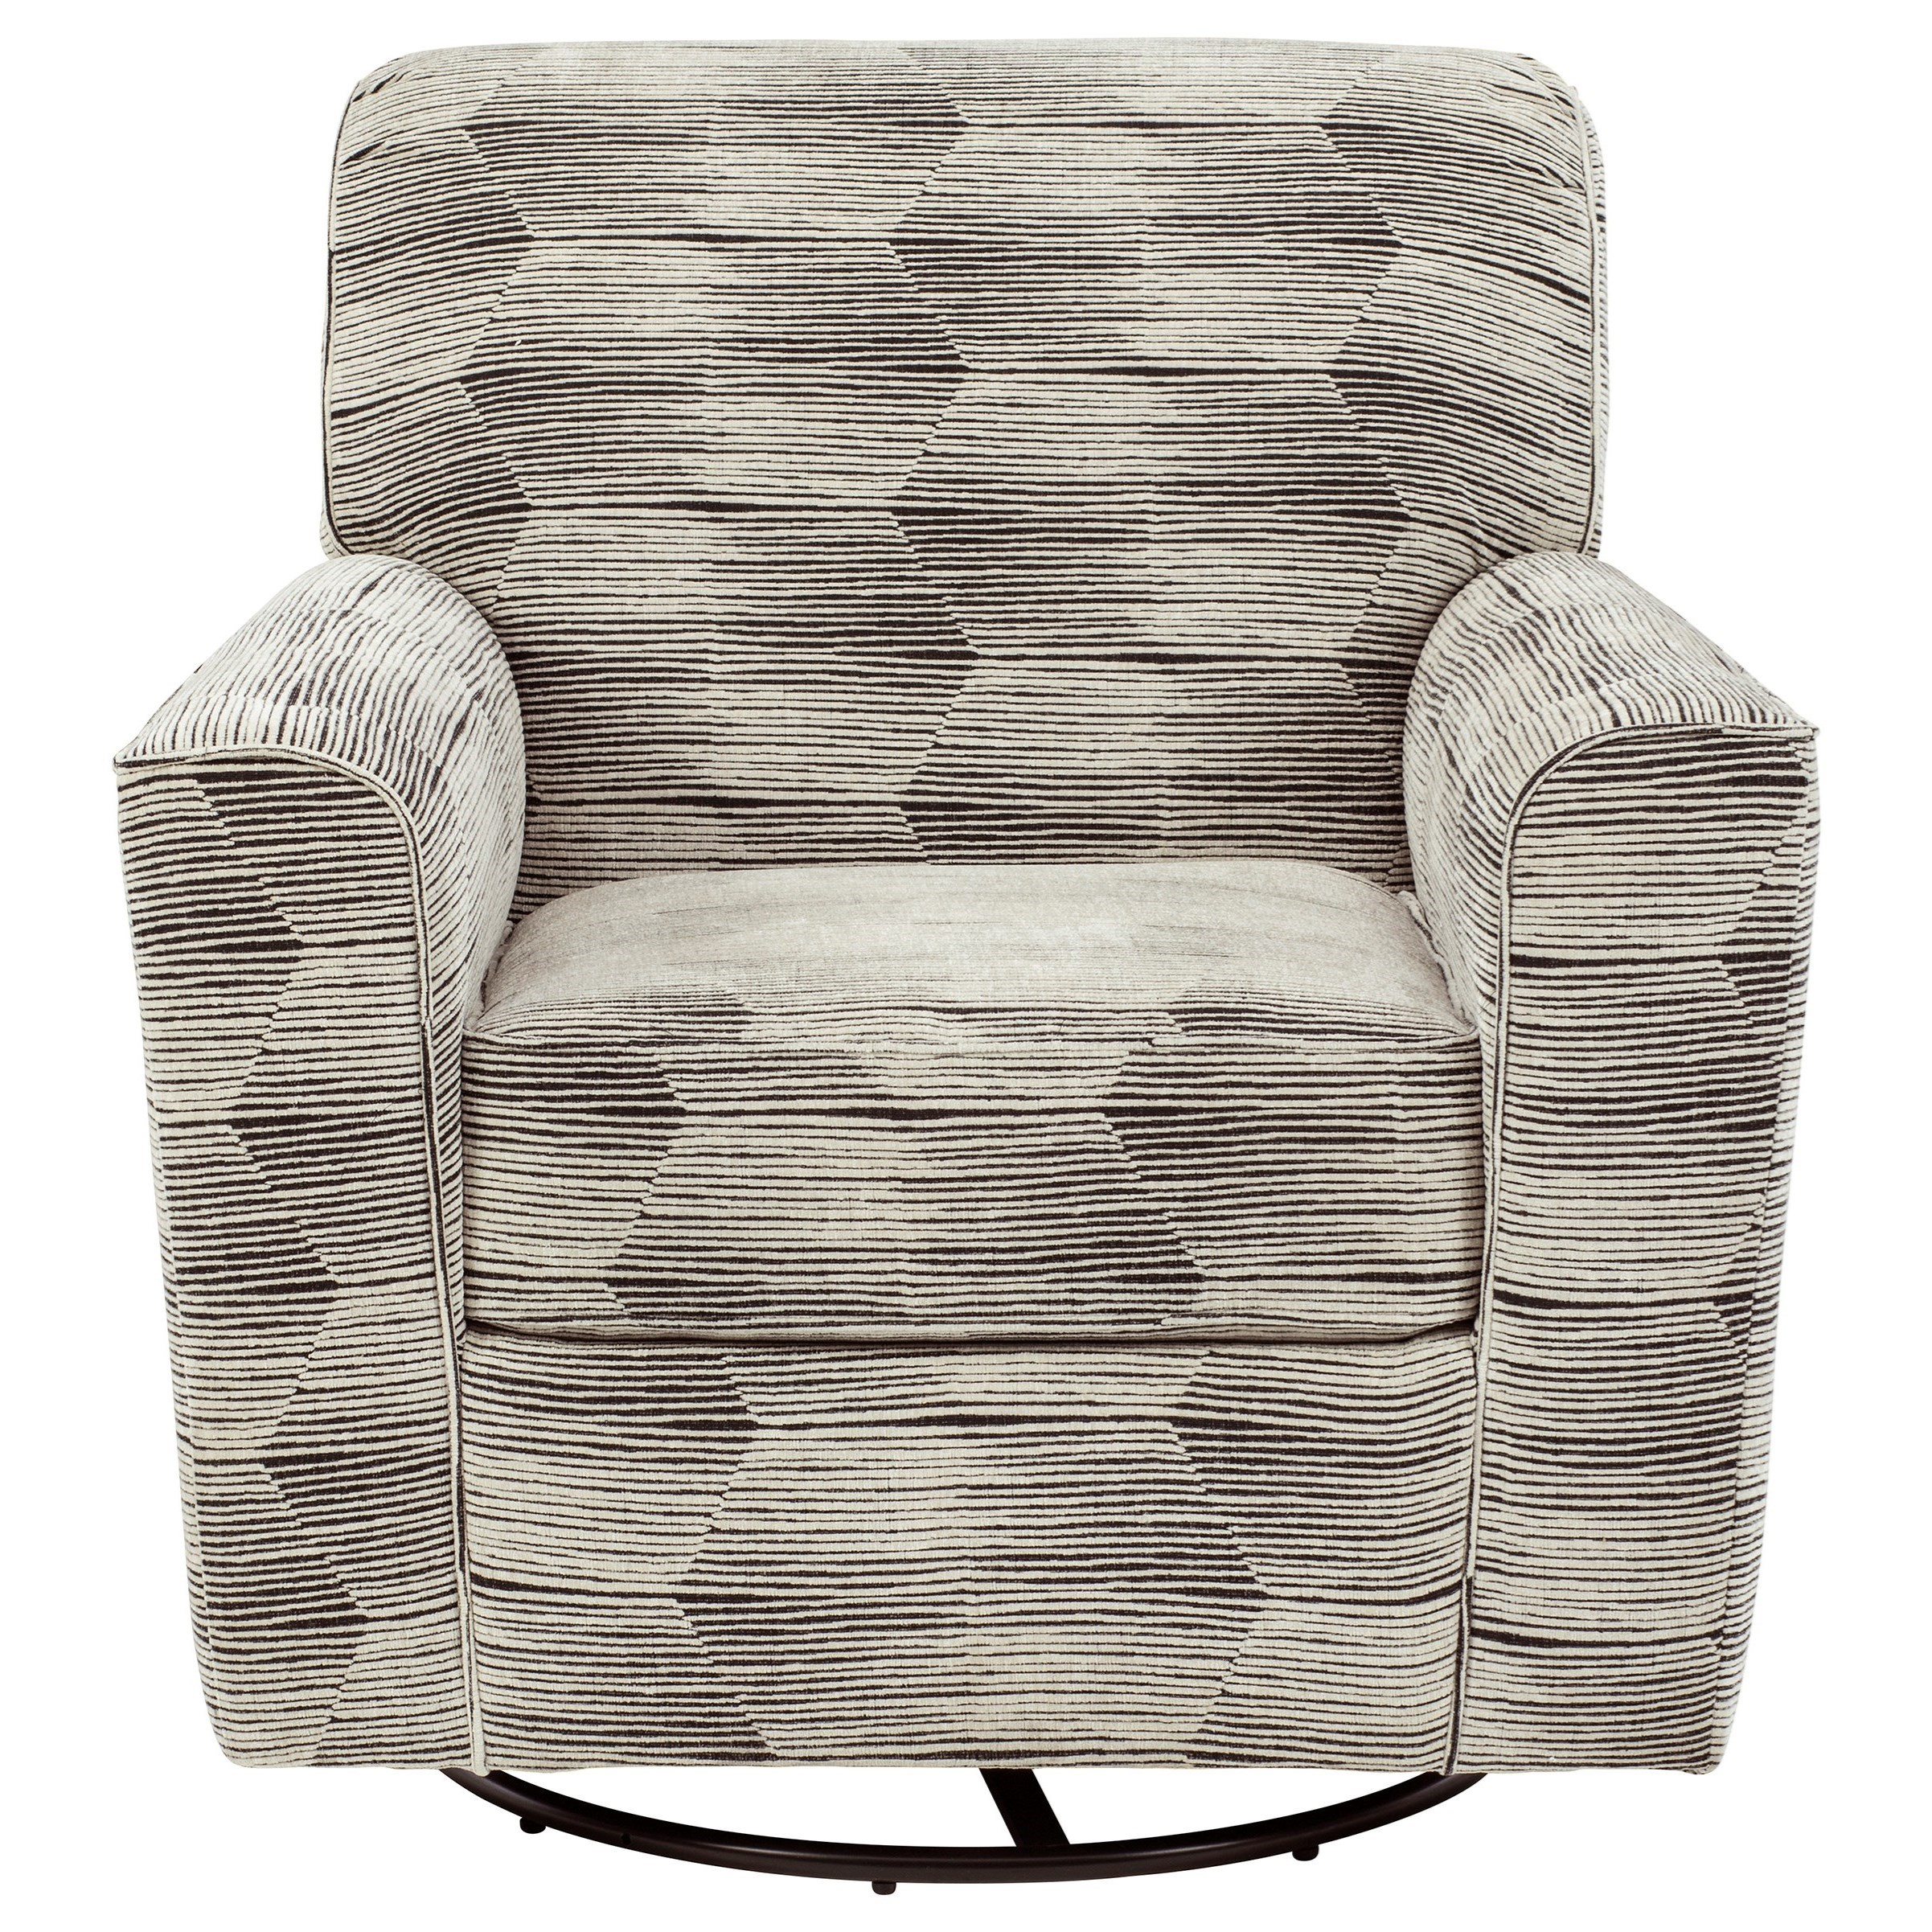 Callisburg Swivel Glider Accent Chair by Benchcraft at Houston's Yuma Furniture